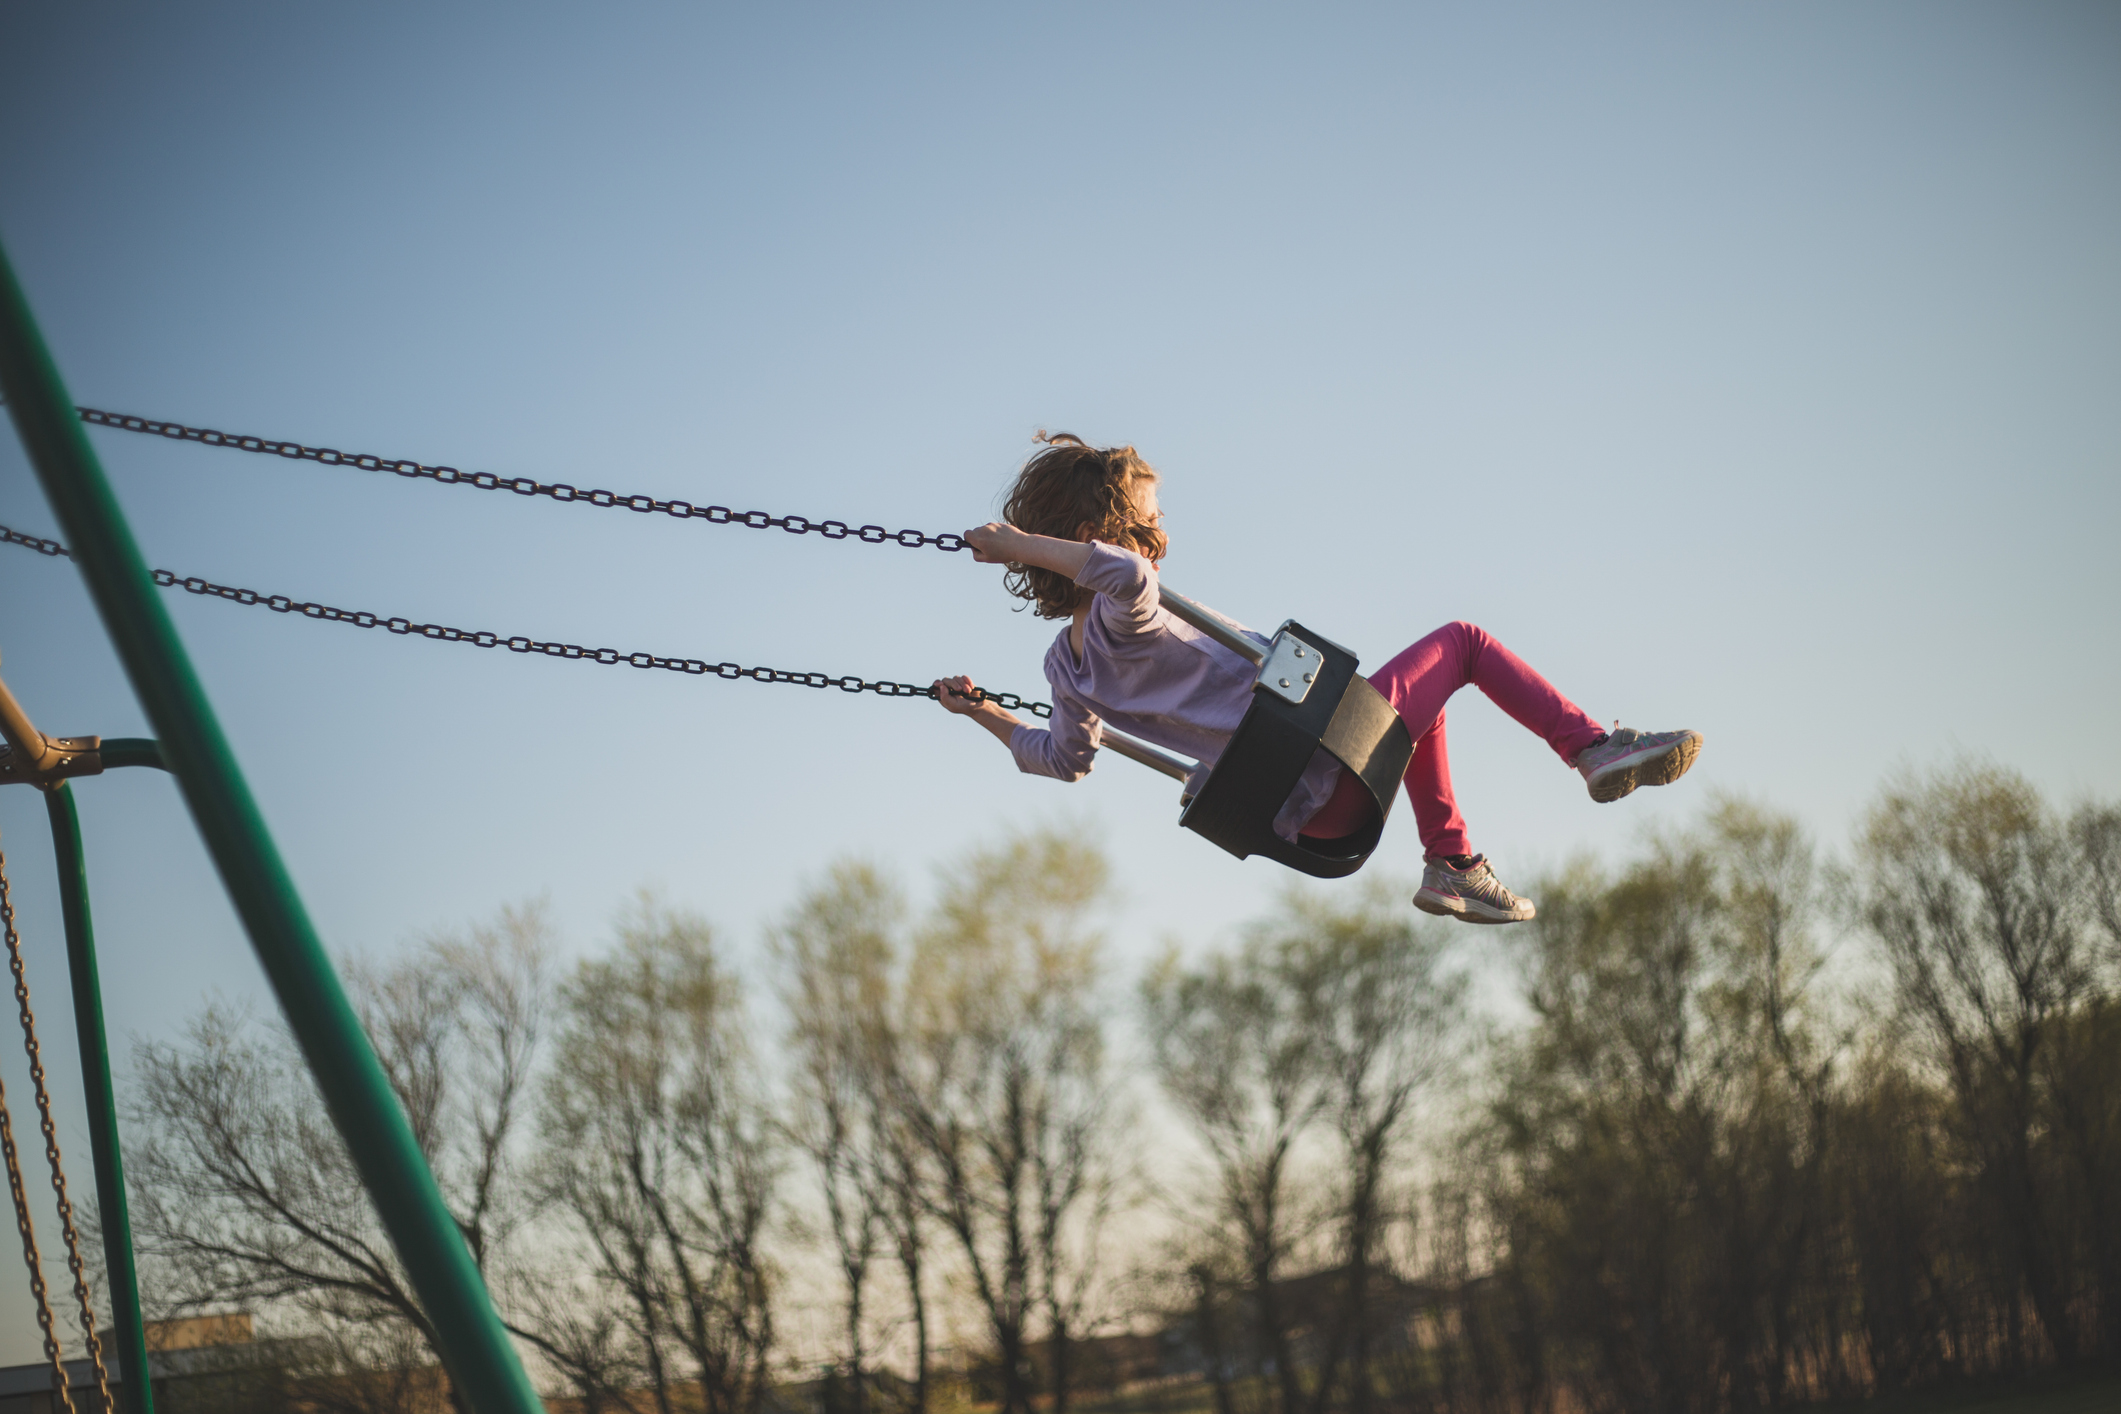 Little girl swings way up high into the sky above the trees on a swing set.